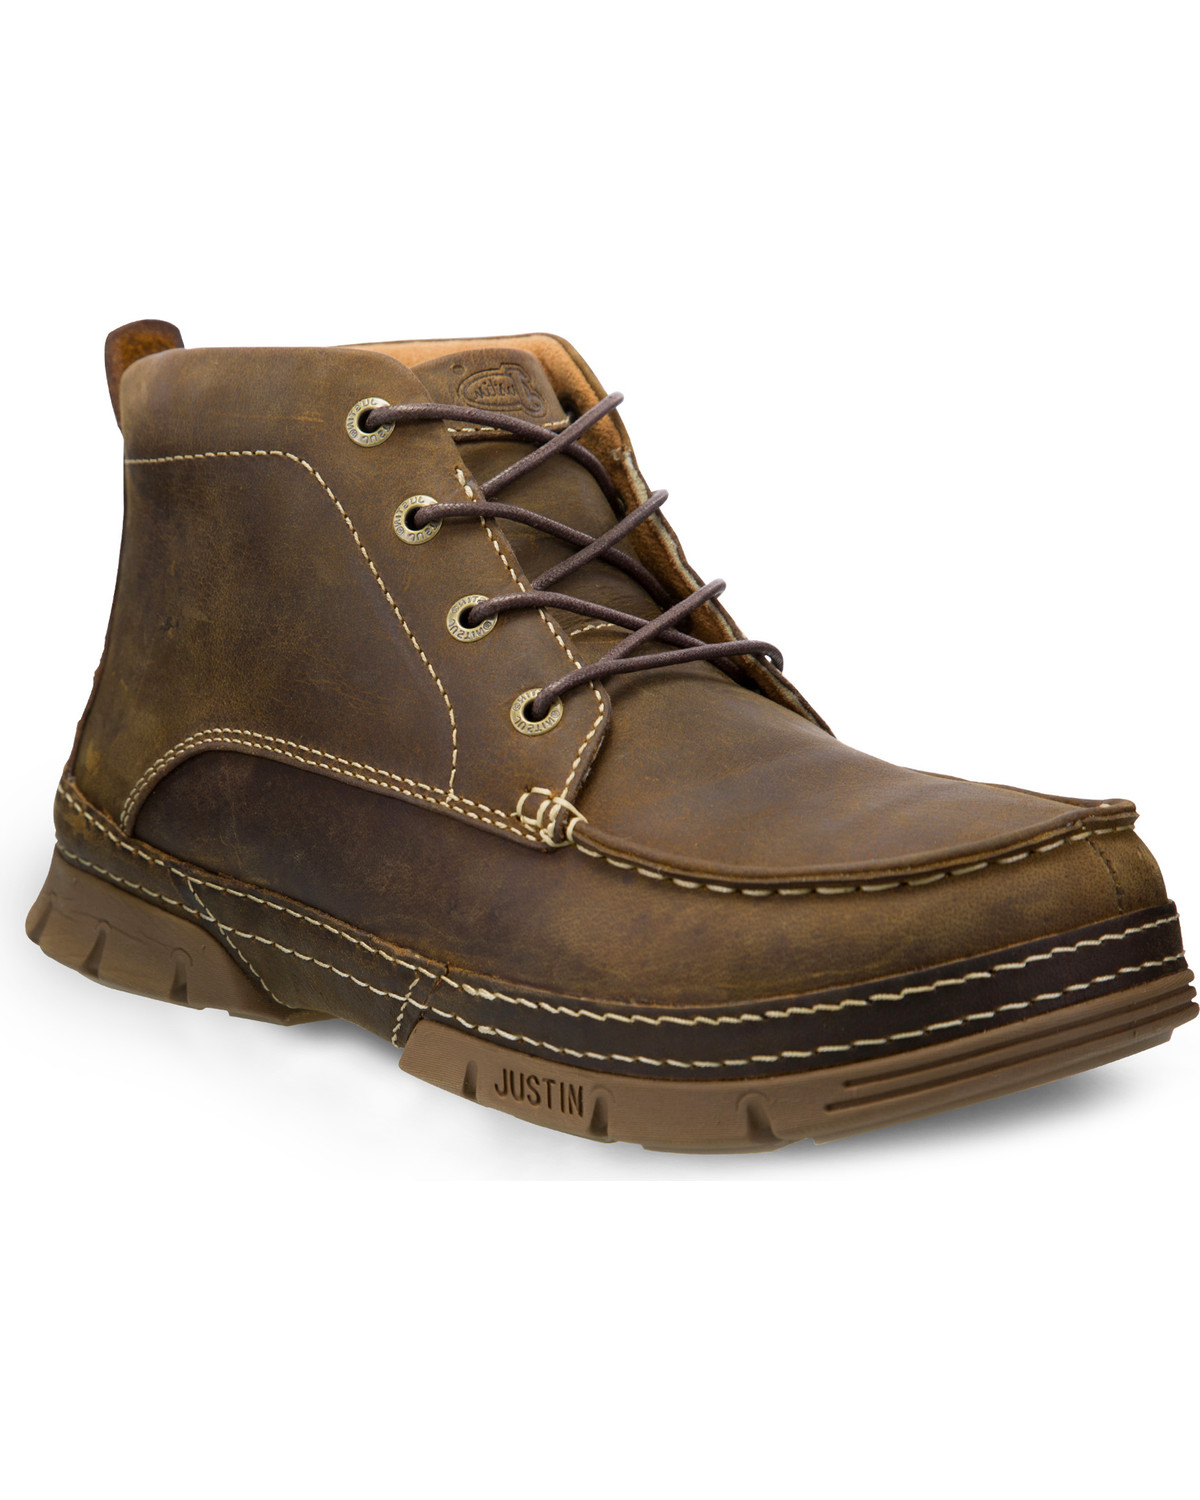 Justin Men S Tobar Brown 5 Quot Lace Up Work Boots Steel Toe